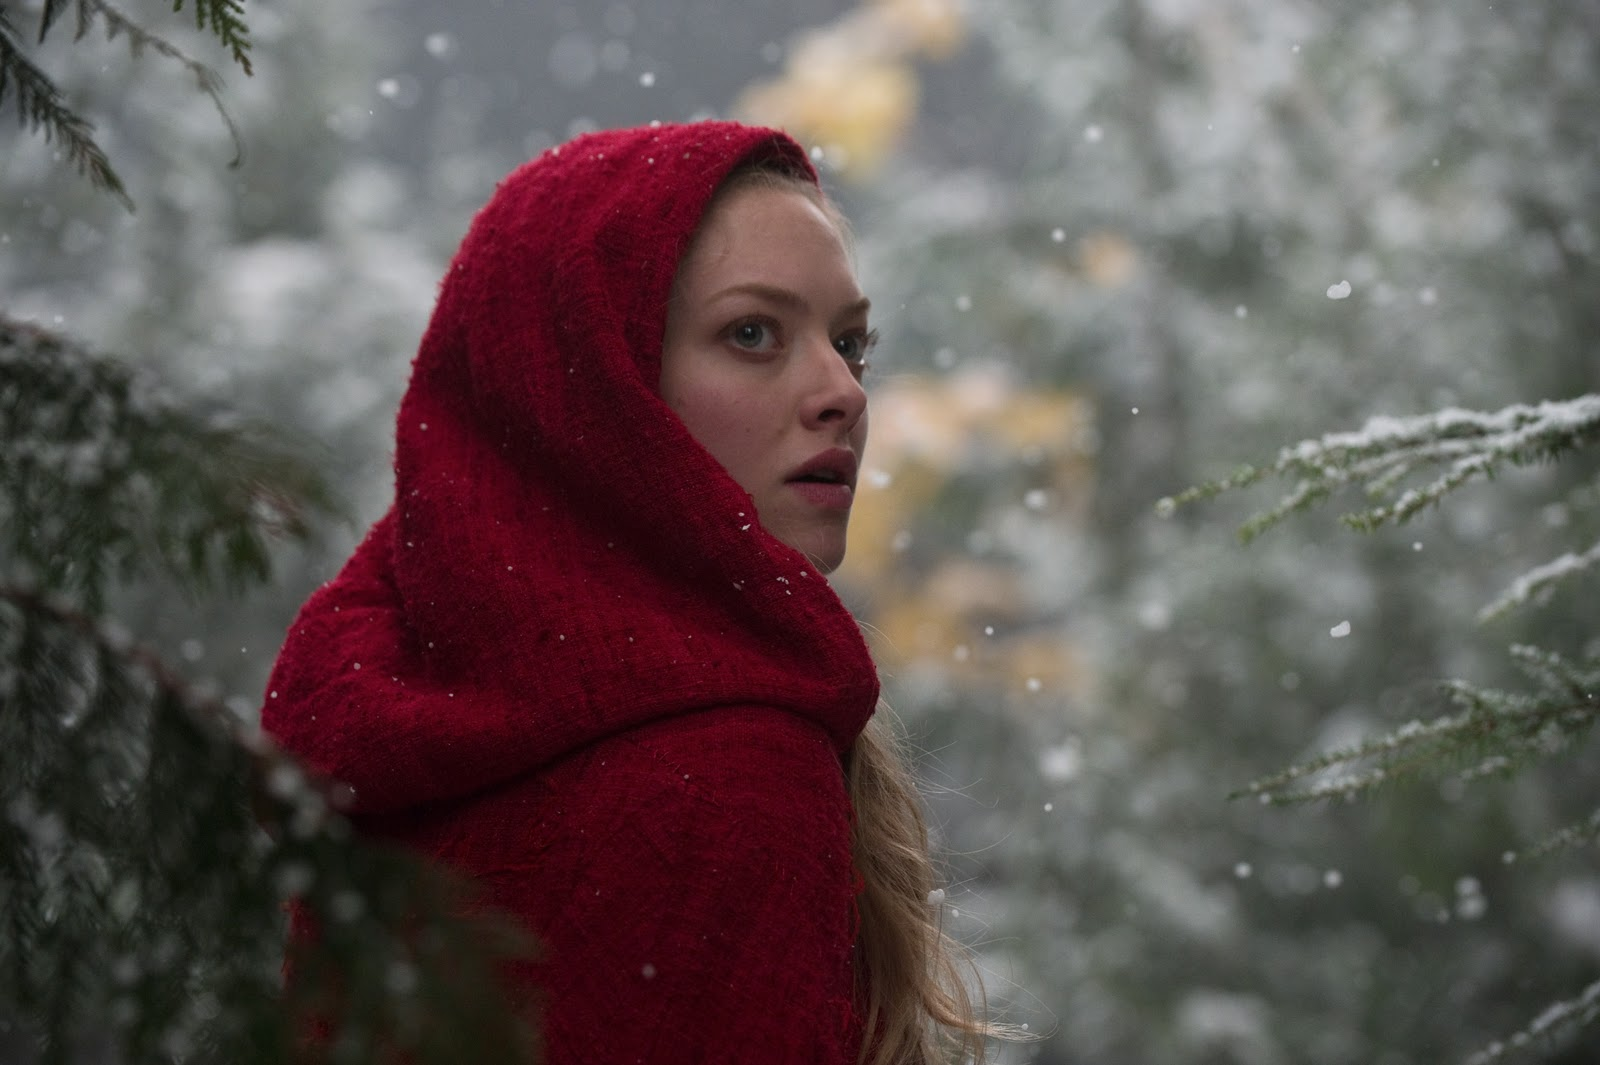 http://3.bp.blogspot.com/_VbI2qfEJLI4/TPDOJ42PyVI/AAAAAAAAHYs/d-cCPiajgbw/s1600/red_riding_hood_movie_image_amanda_seyfried.jpg